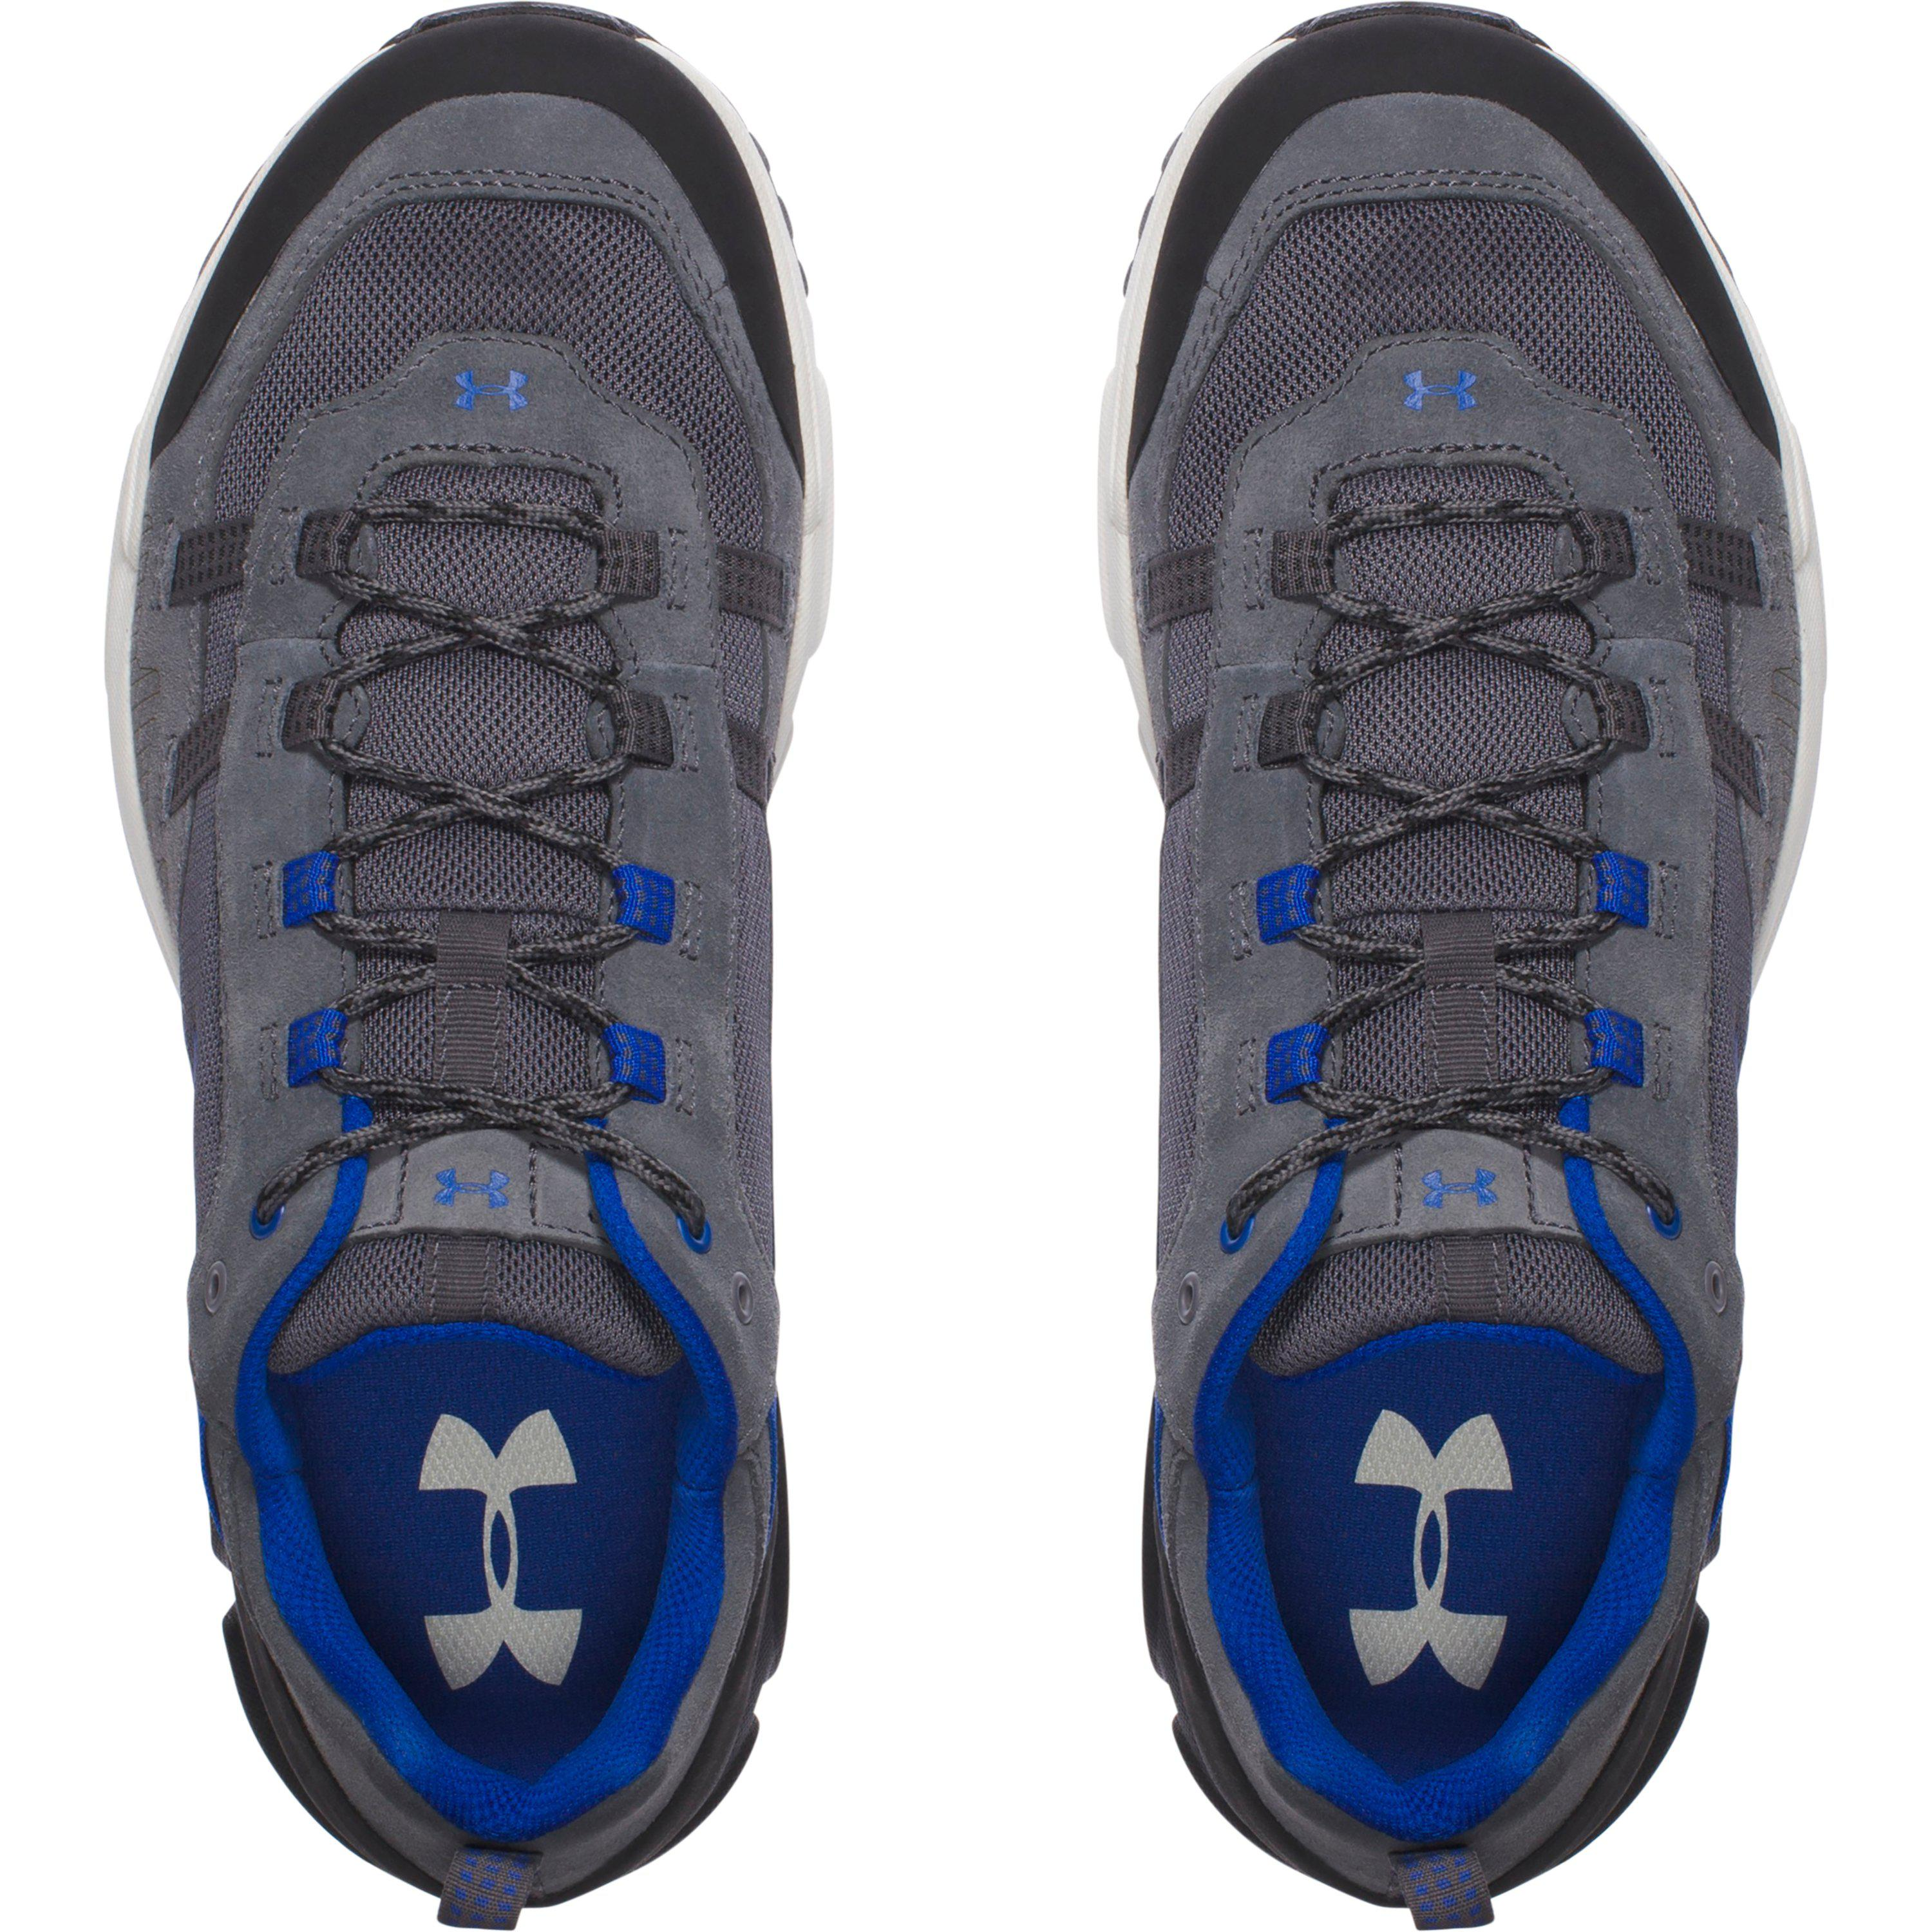 332a0027302 Under Armour Blue Men's Ua Post Canyon Low Hiking Boots for men